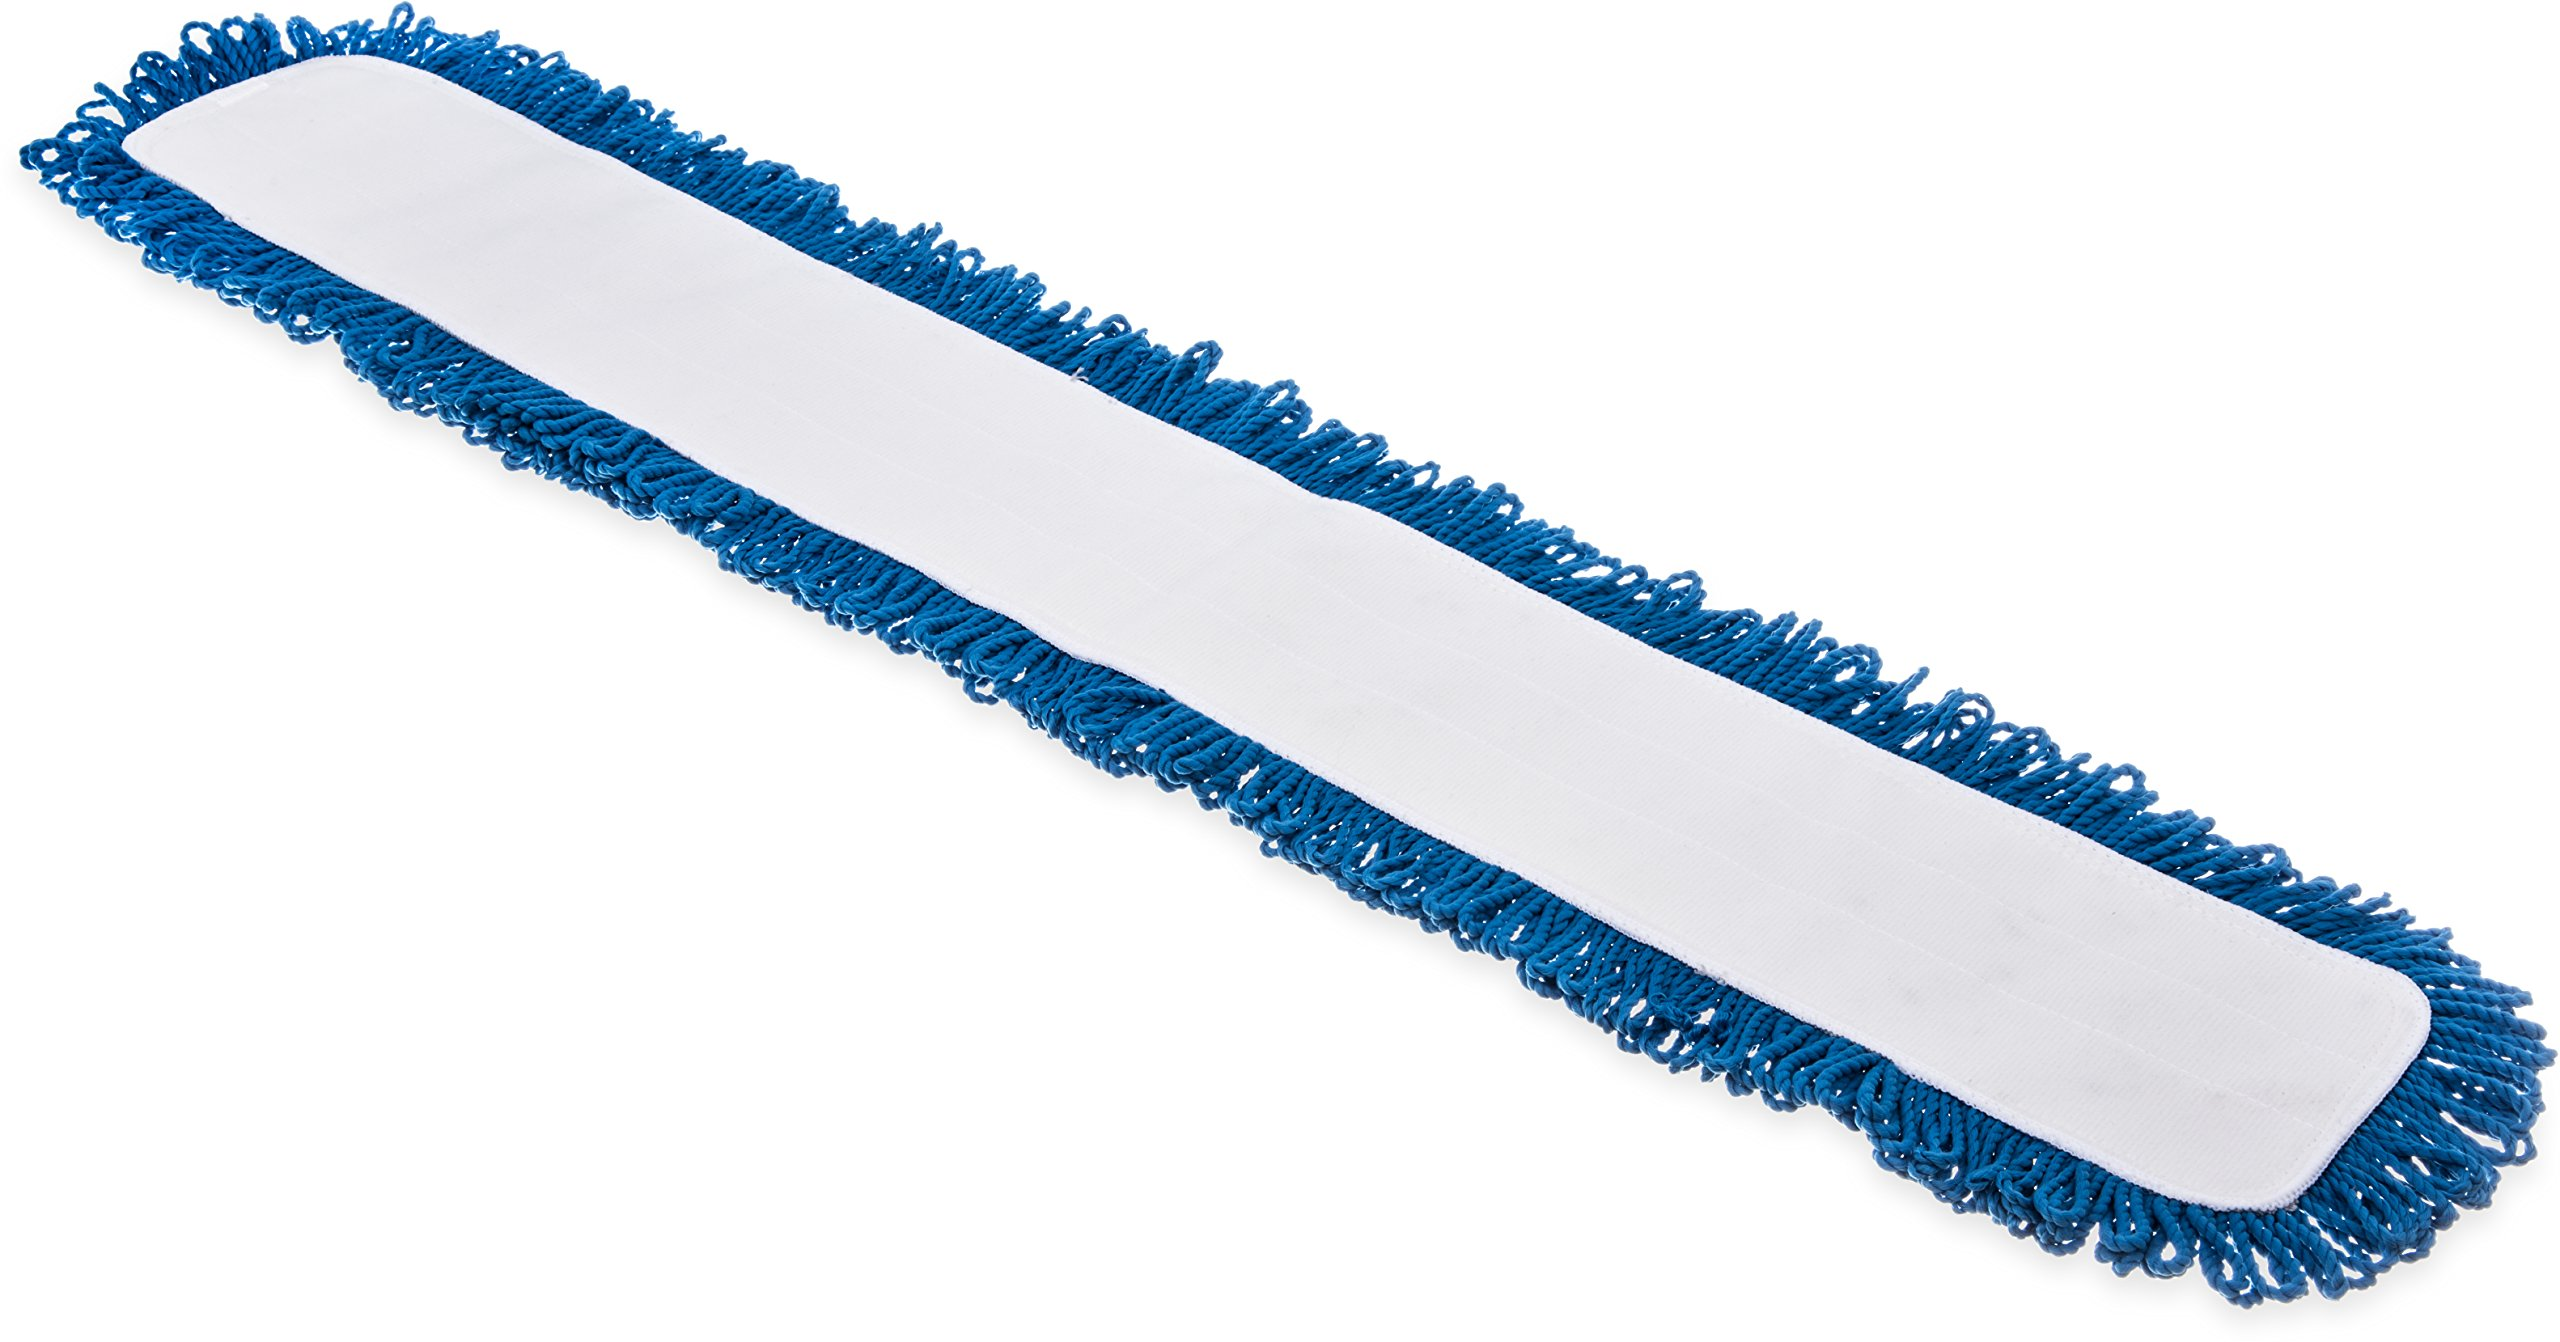 Carlisle 363313614 Polyester/Polyimide Blend Dry Mop Pad, 36'' Length, Blue (Pack of 12) by Carlisle (Image #1)